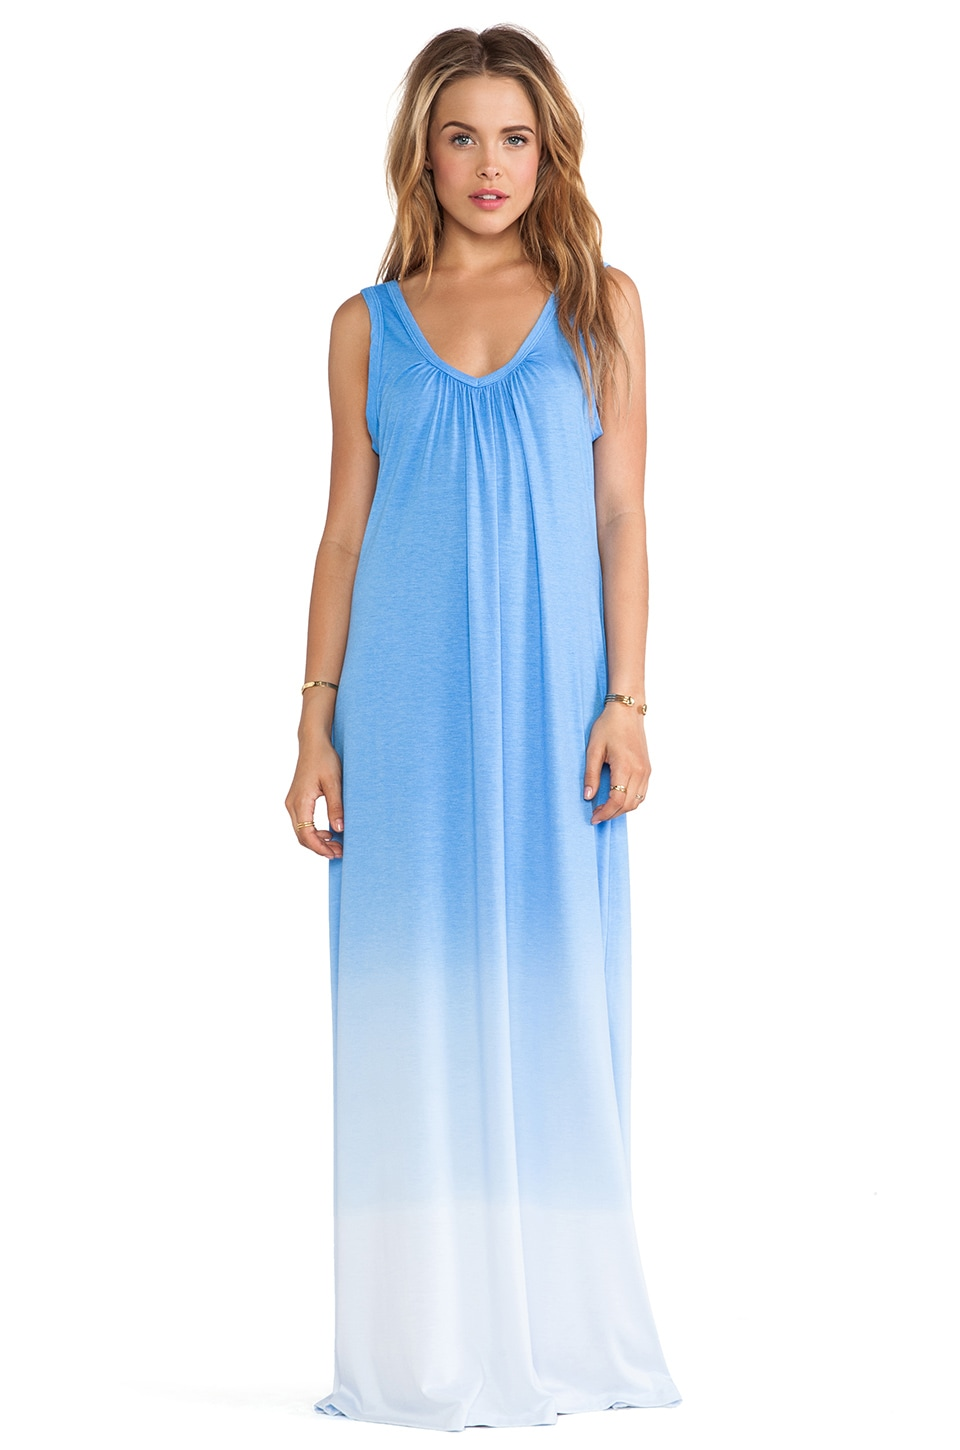 Saint Grace Seaside Maxi in Indie Ombre